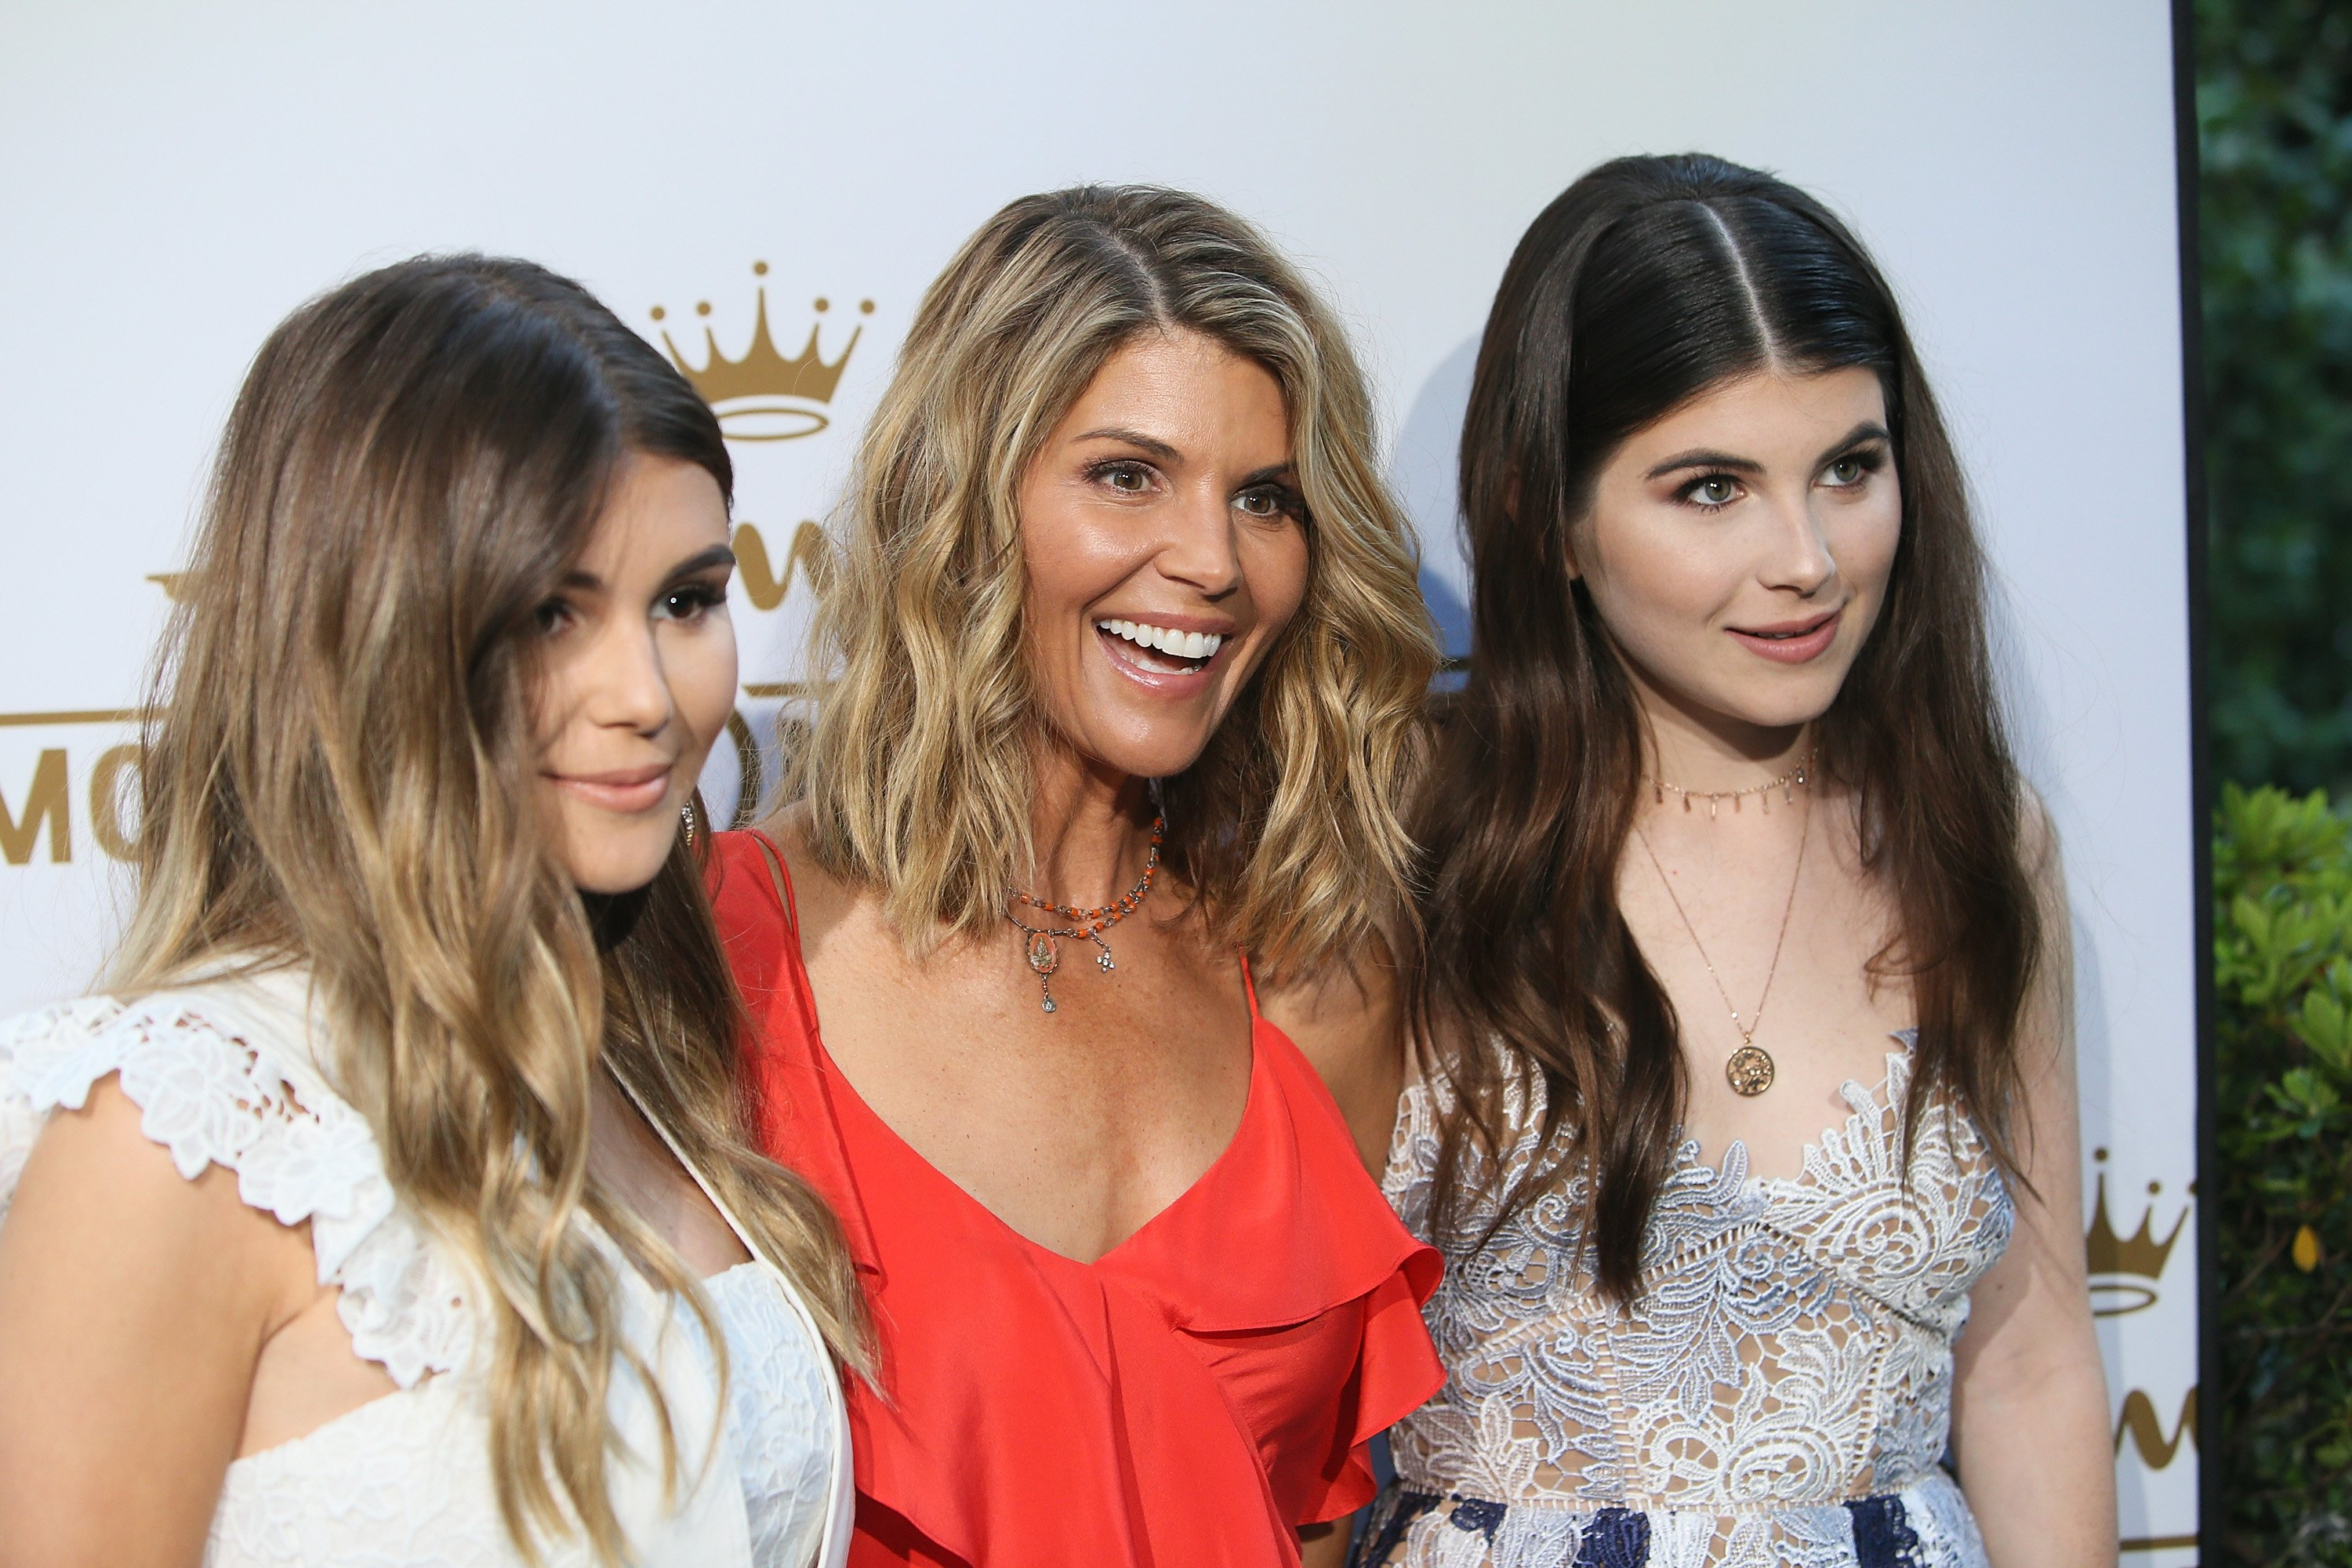 Lori Loughlin, Olivia Jade, and Isabella Rose Giannulli | Photo: Getty Images